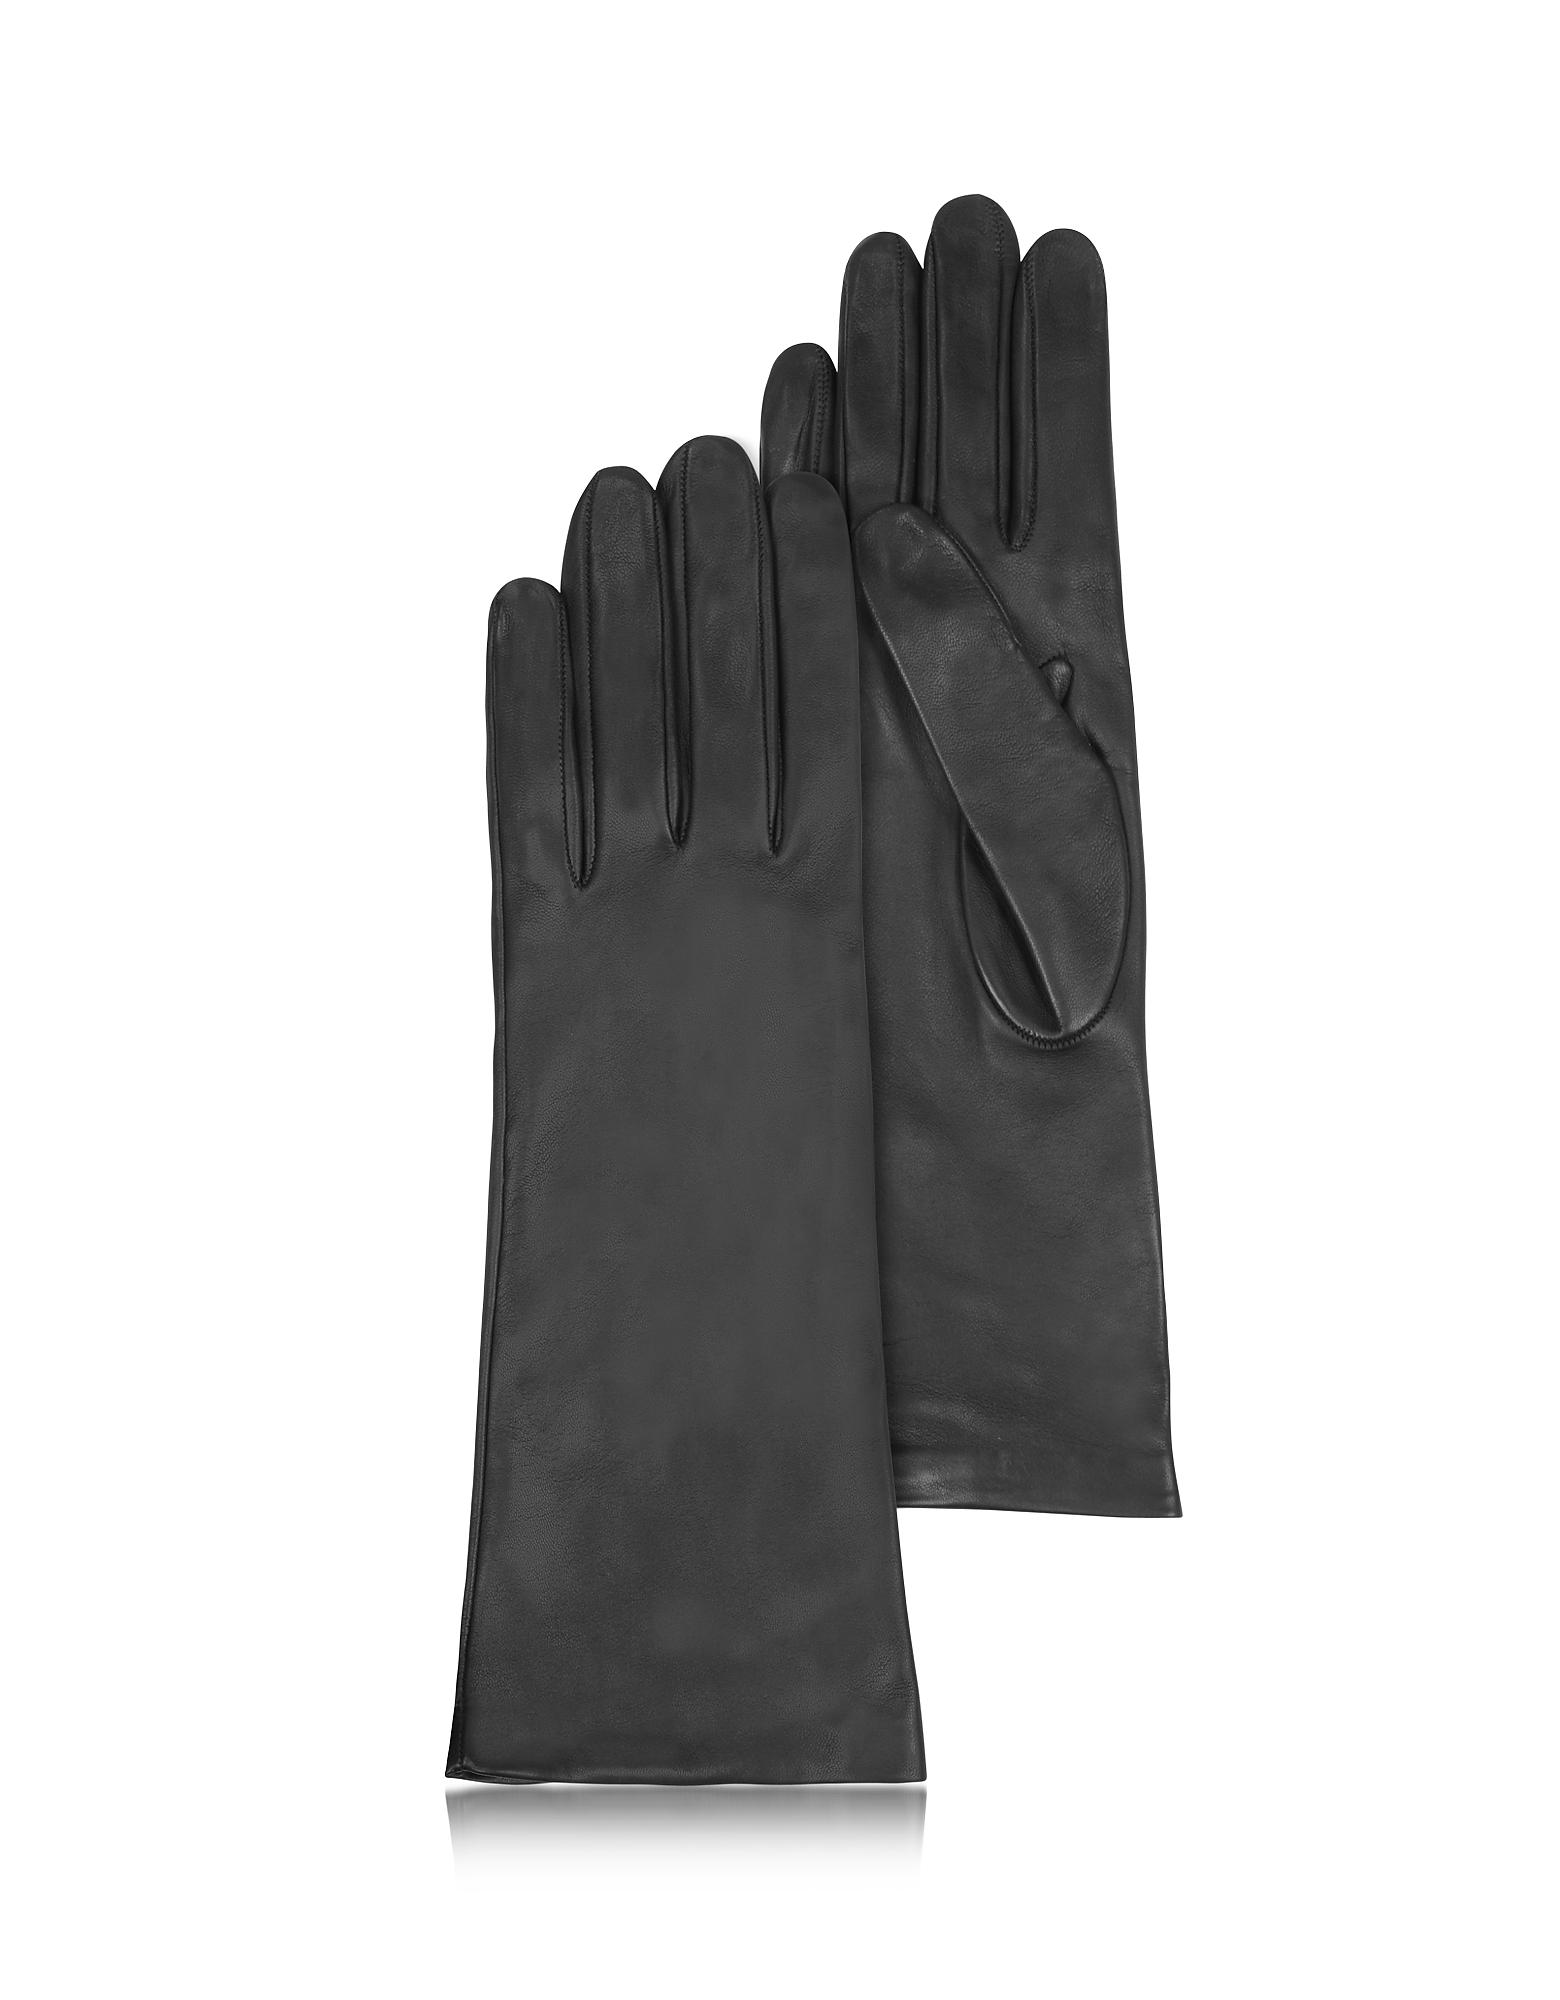 Vintage Style Gloves- Long, Wrist, Evening, Day, Leather, Lace Forzieri Designer Womens Gloves Womens Silk Lined Black Italian Leather Long Gloves $106.50 AT vintagedancer.com